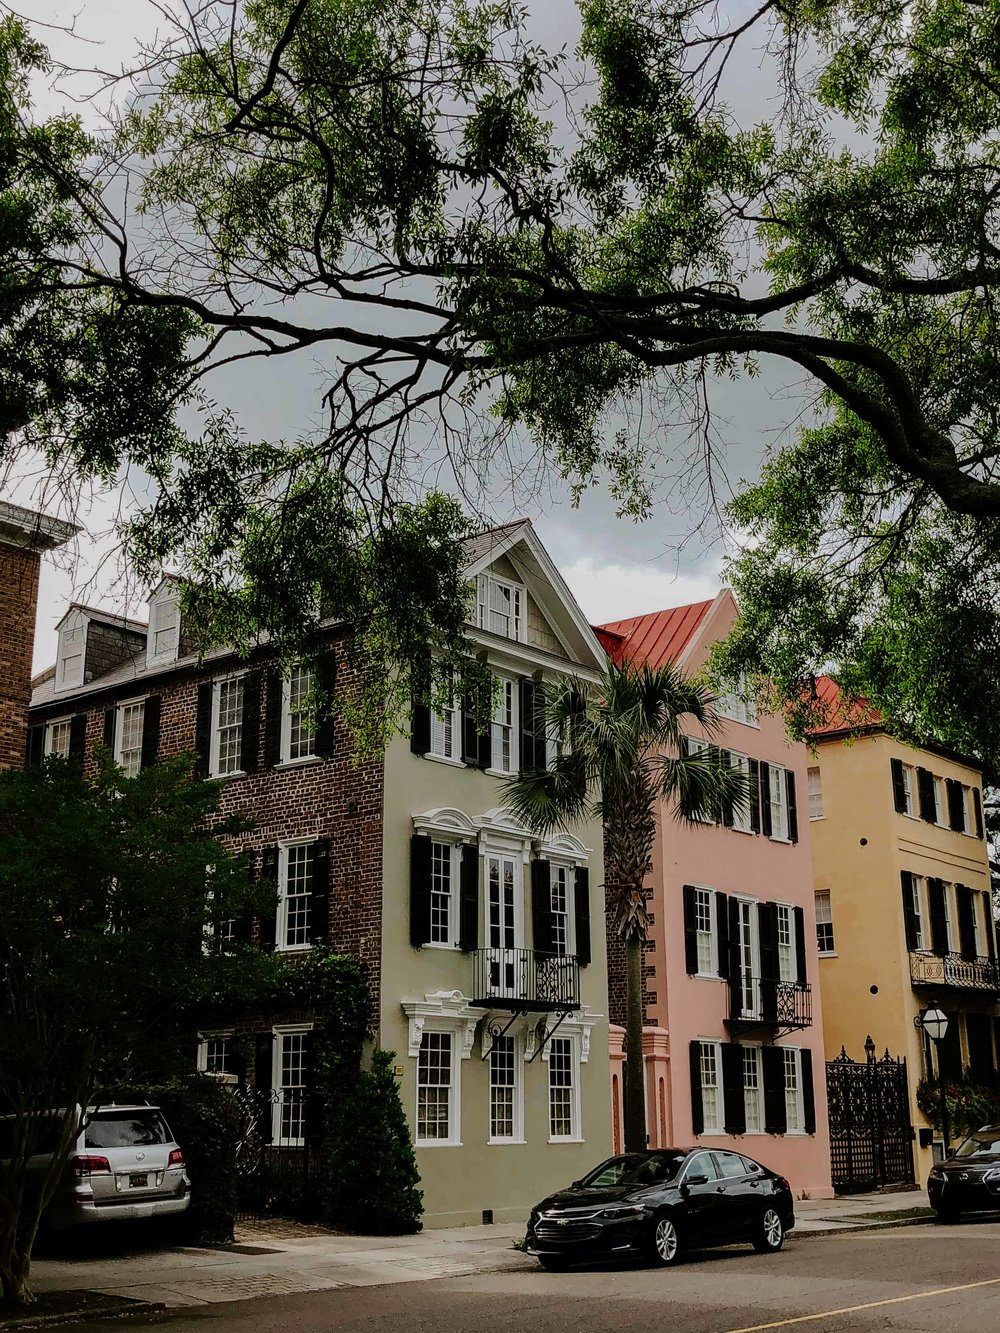 charleston-sc-city-guide-what-to-do-and-see-22.jpg